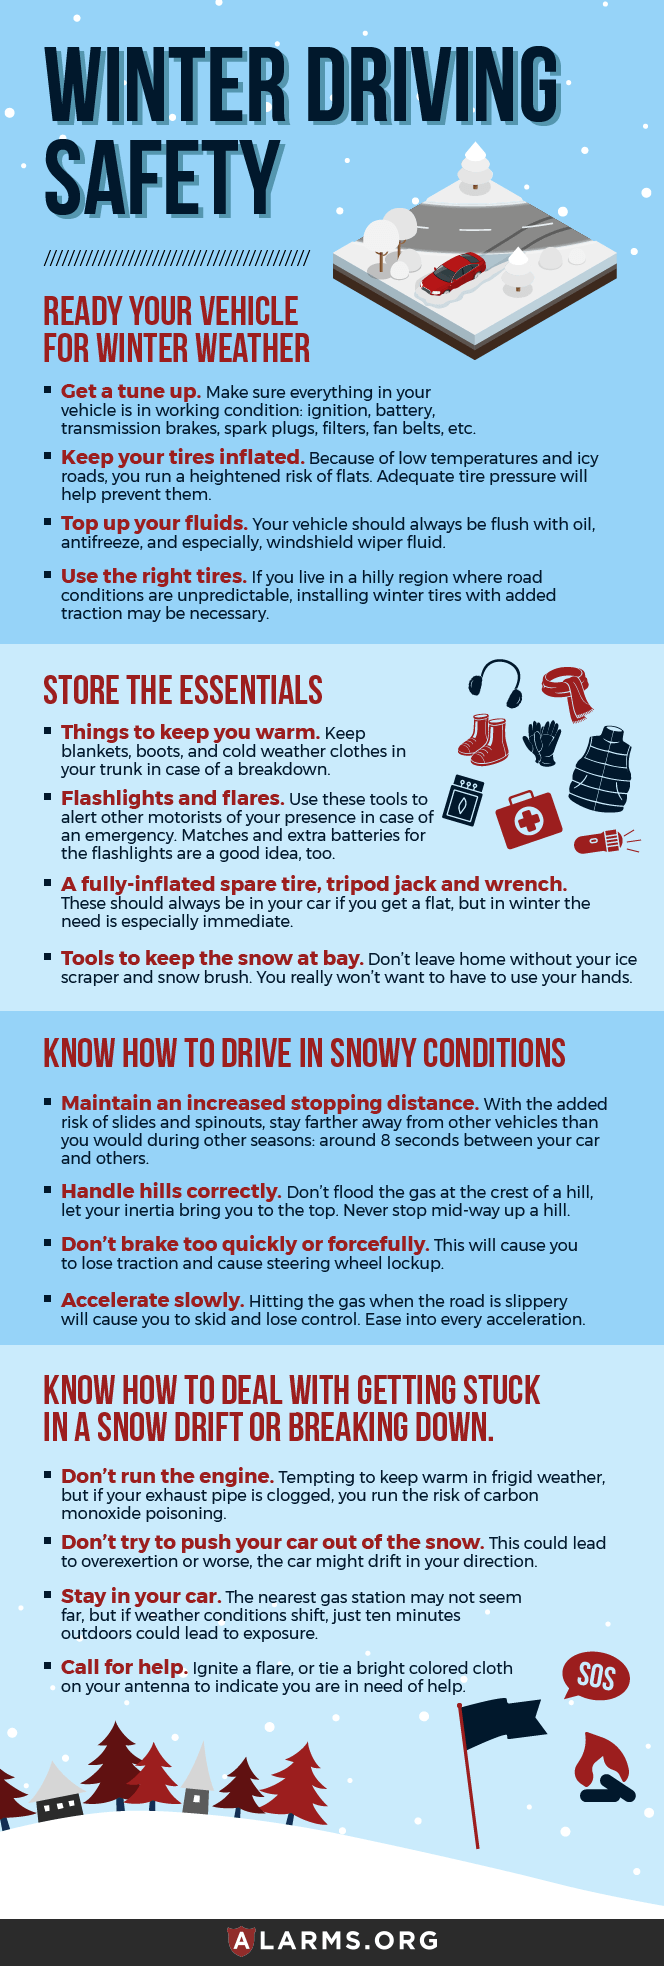 winter driving safety infographic